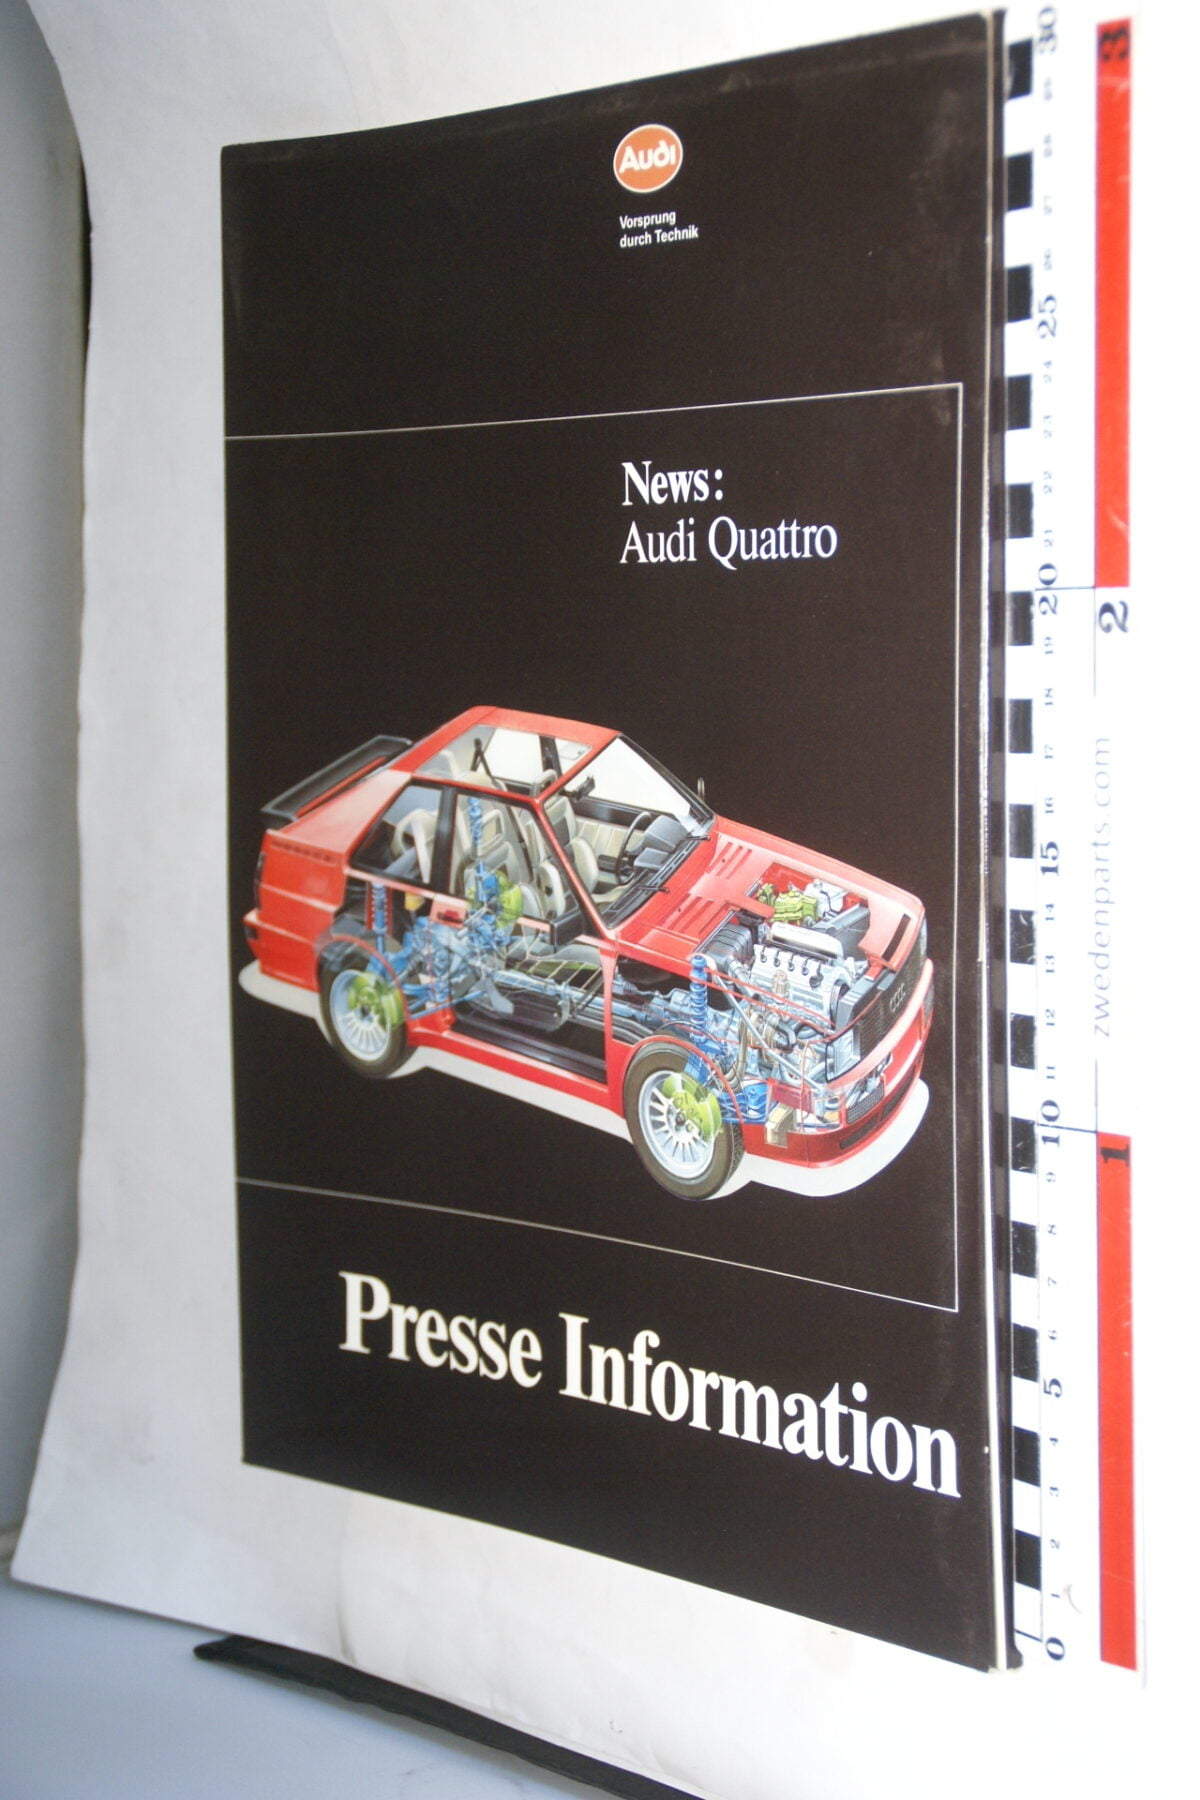 DSC01204 1995 persmap origineel Audi Quattro, Deutsch-be580e66